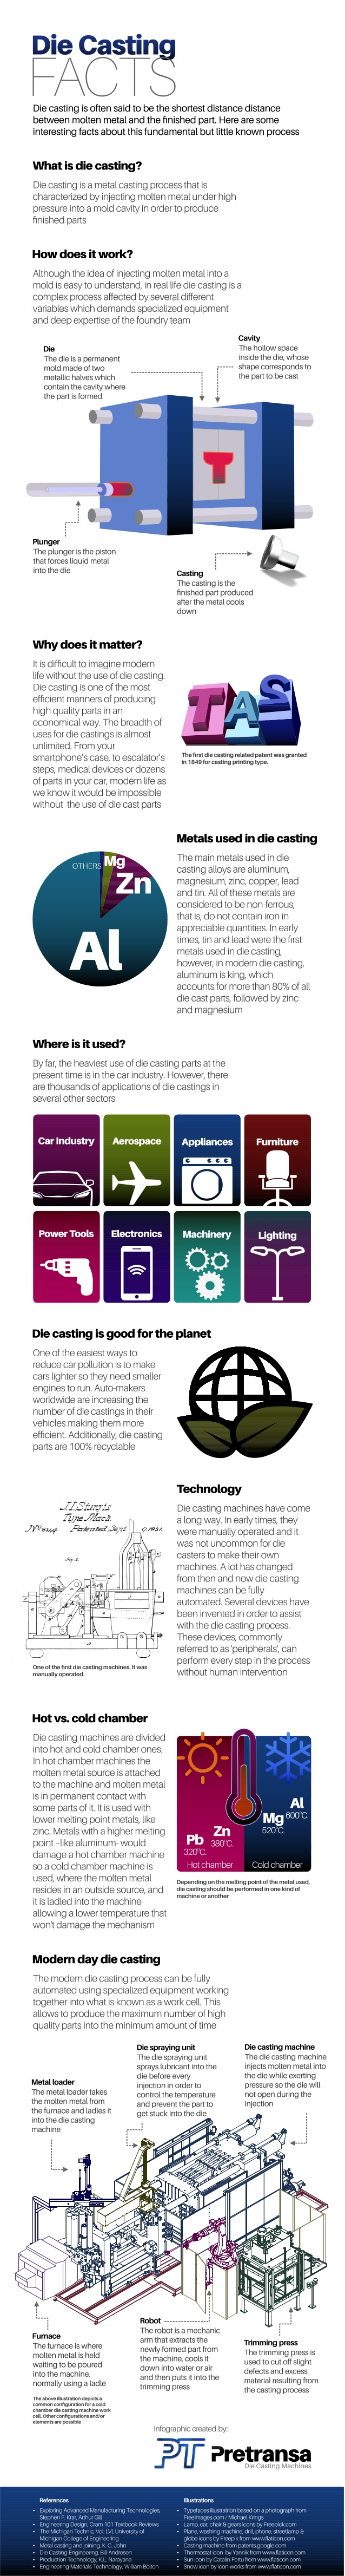 die-casting-facts-infographic-1-638